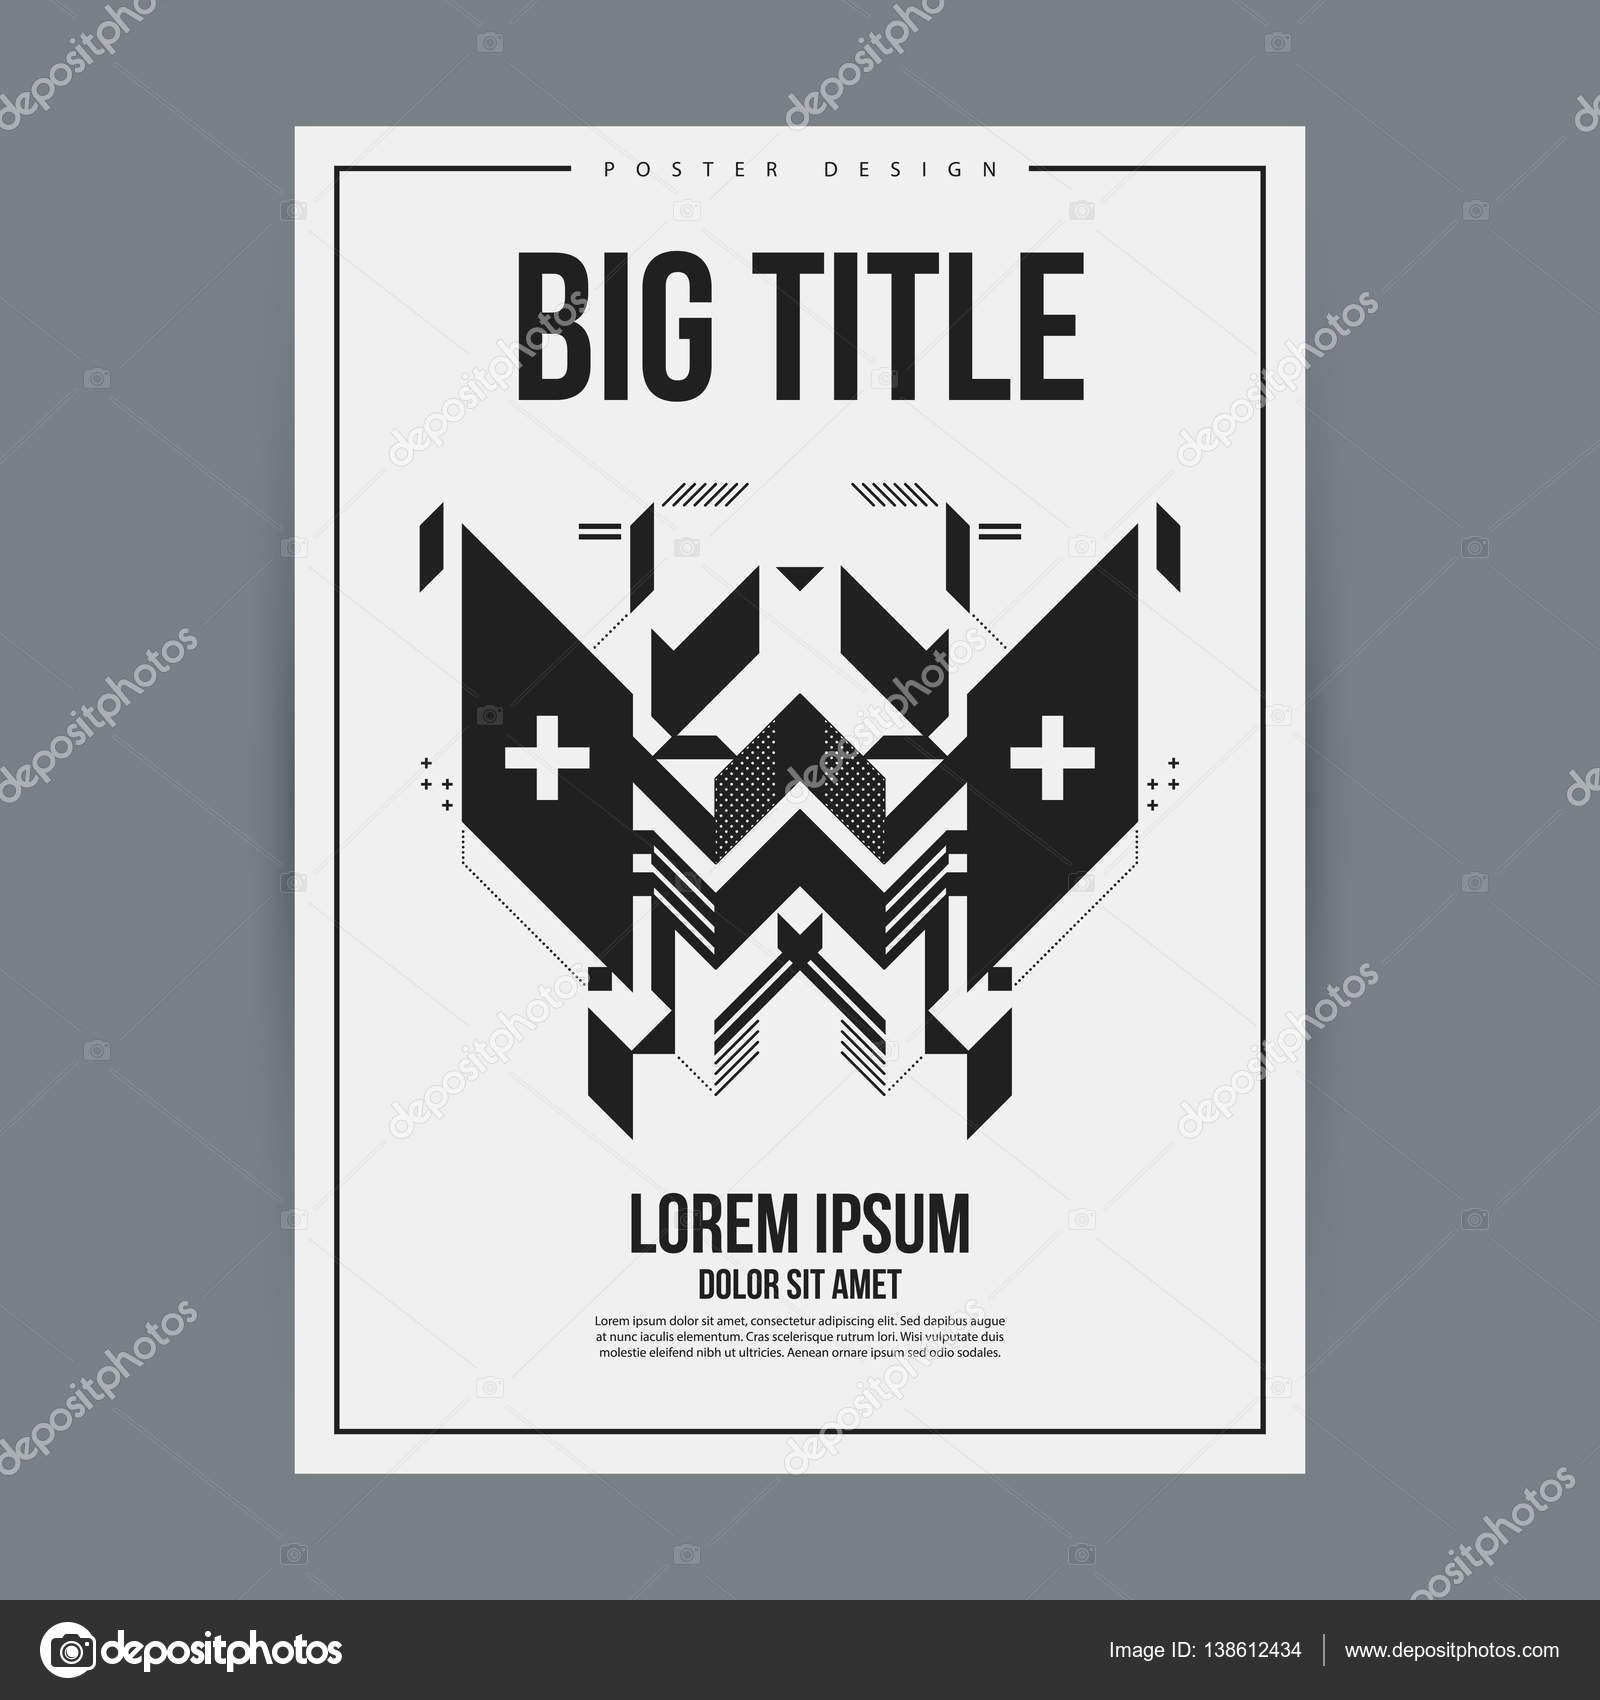 poster design template with abstract geometric element useful for